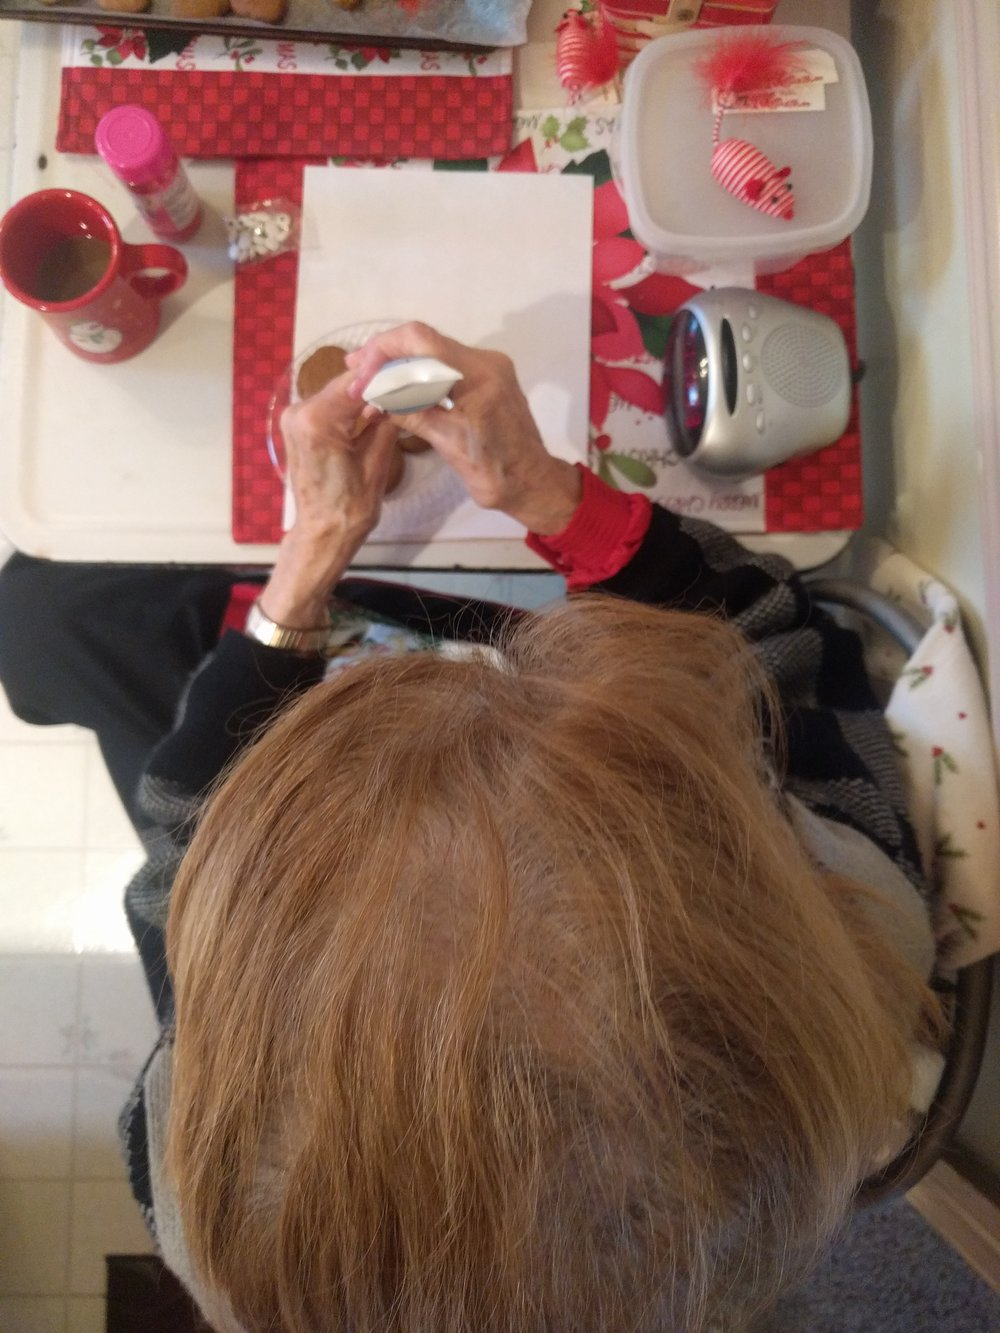 Nannie decorating her gingerbread man